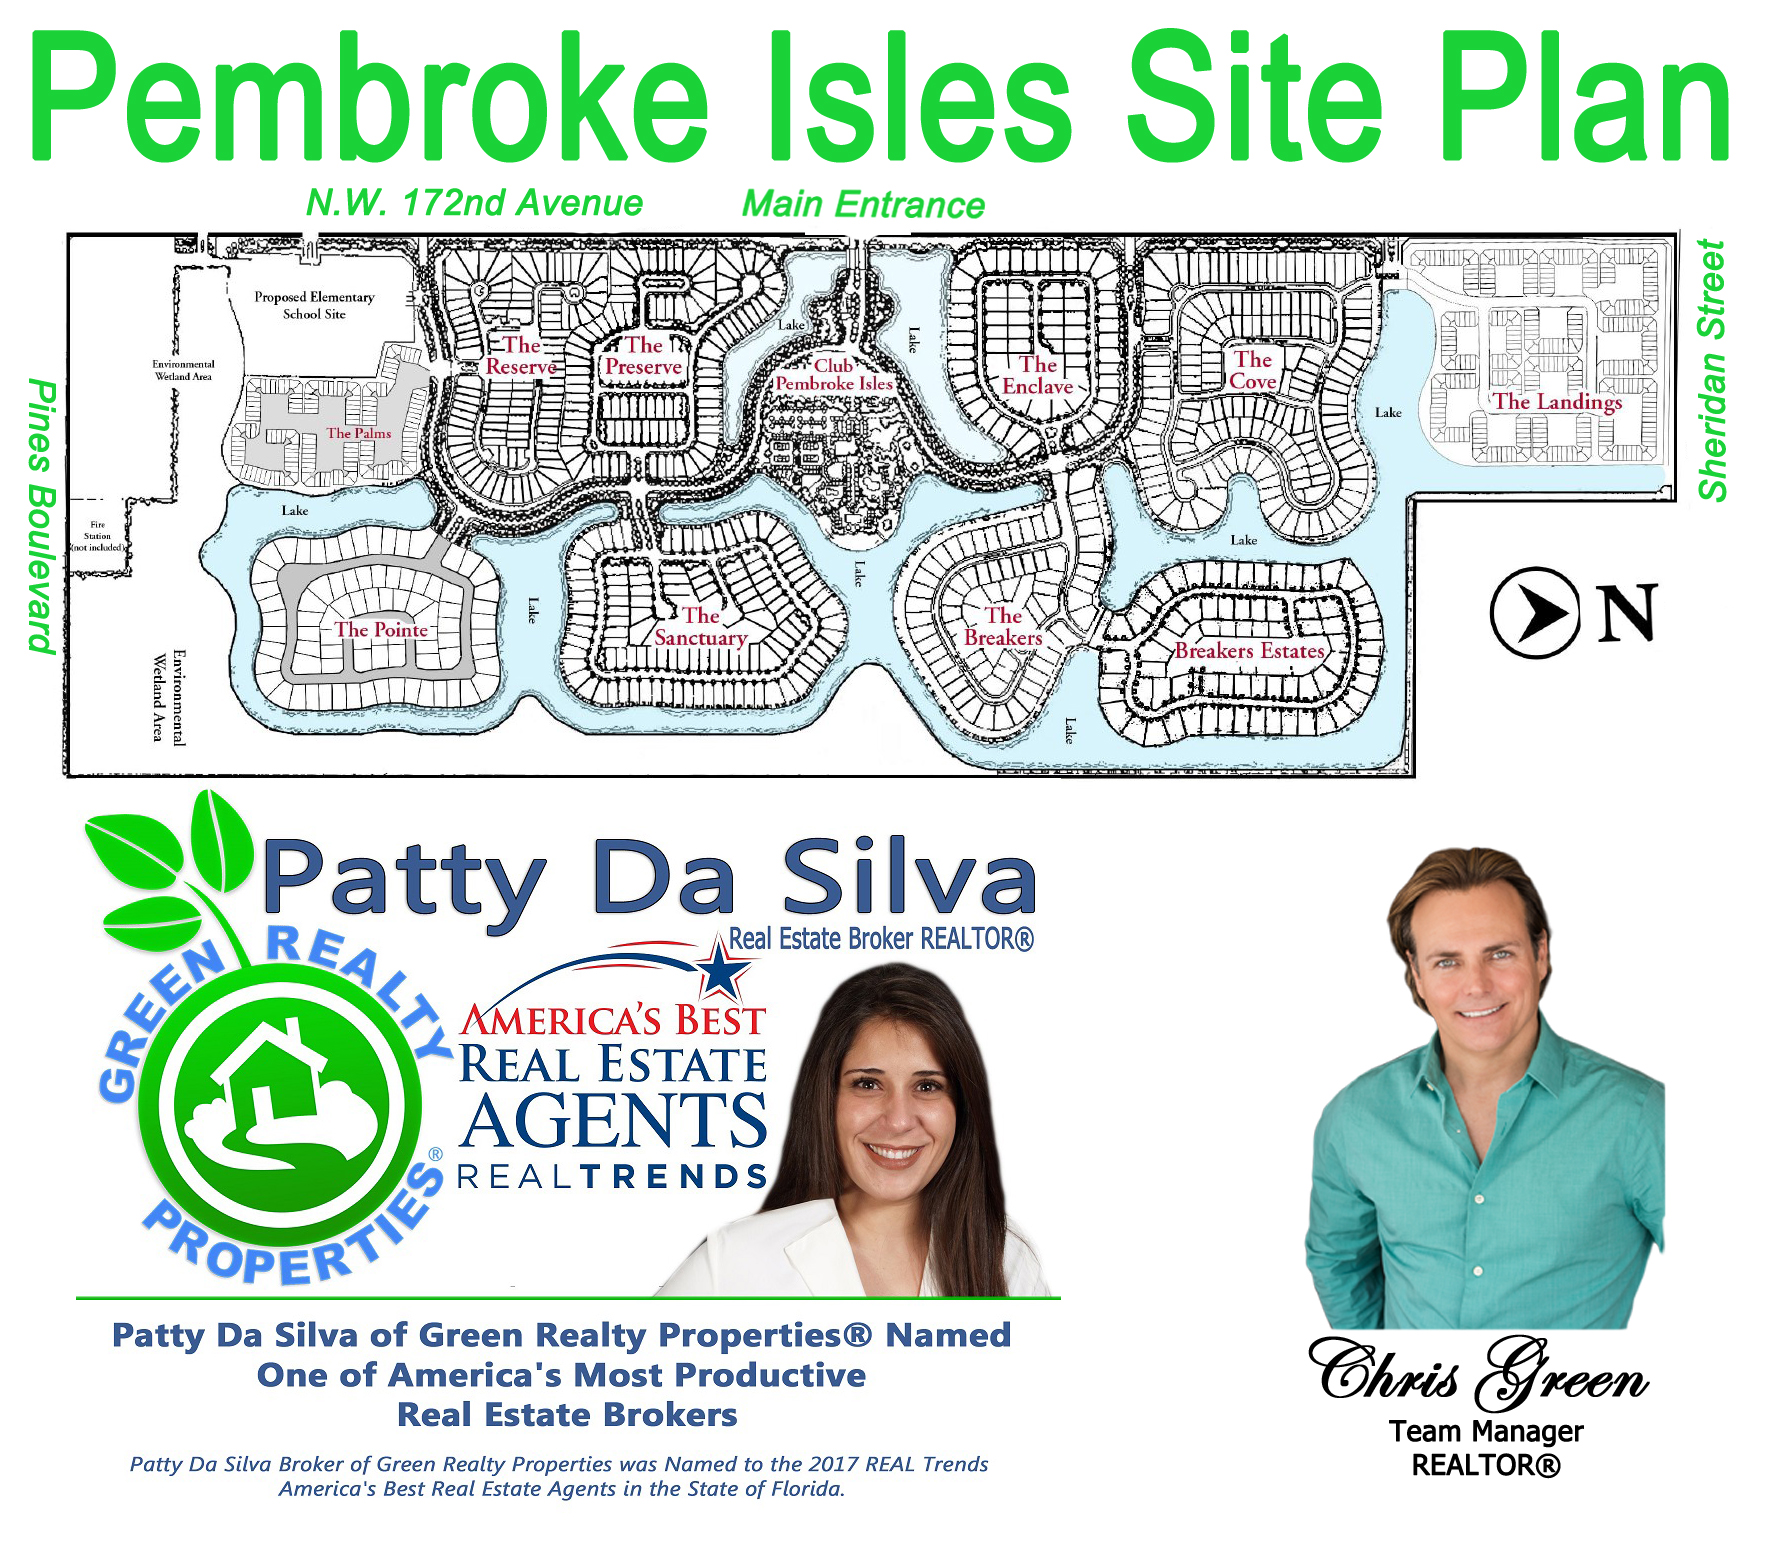 Pembroke Isles Site Plan, Pembroke Isles Realtors, Patty Da Silva Broker, Pembroke Isles Homes For Sale